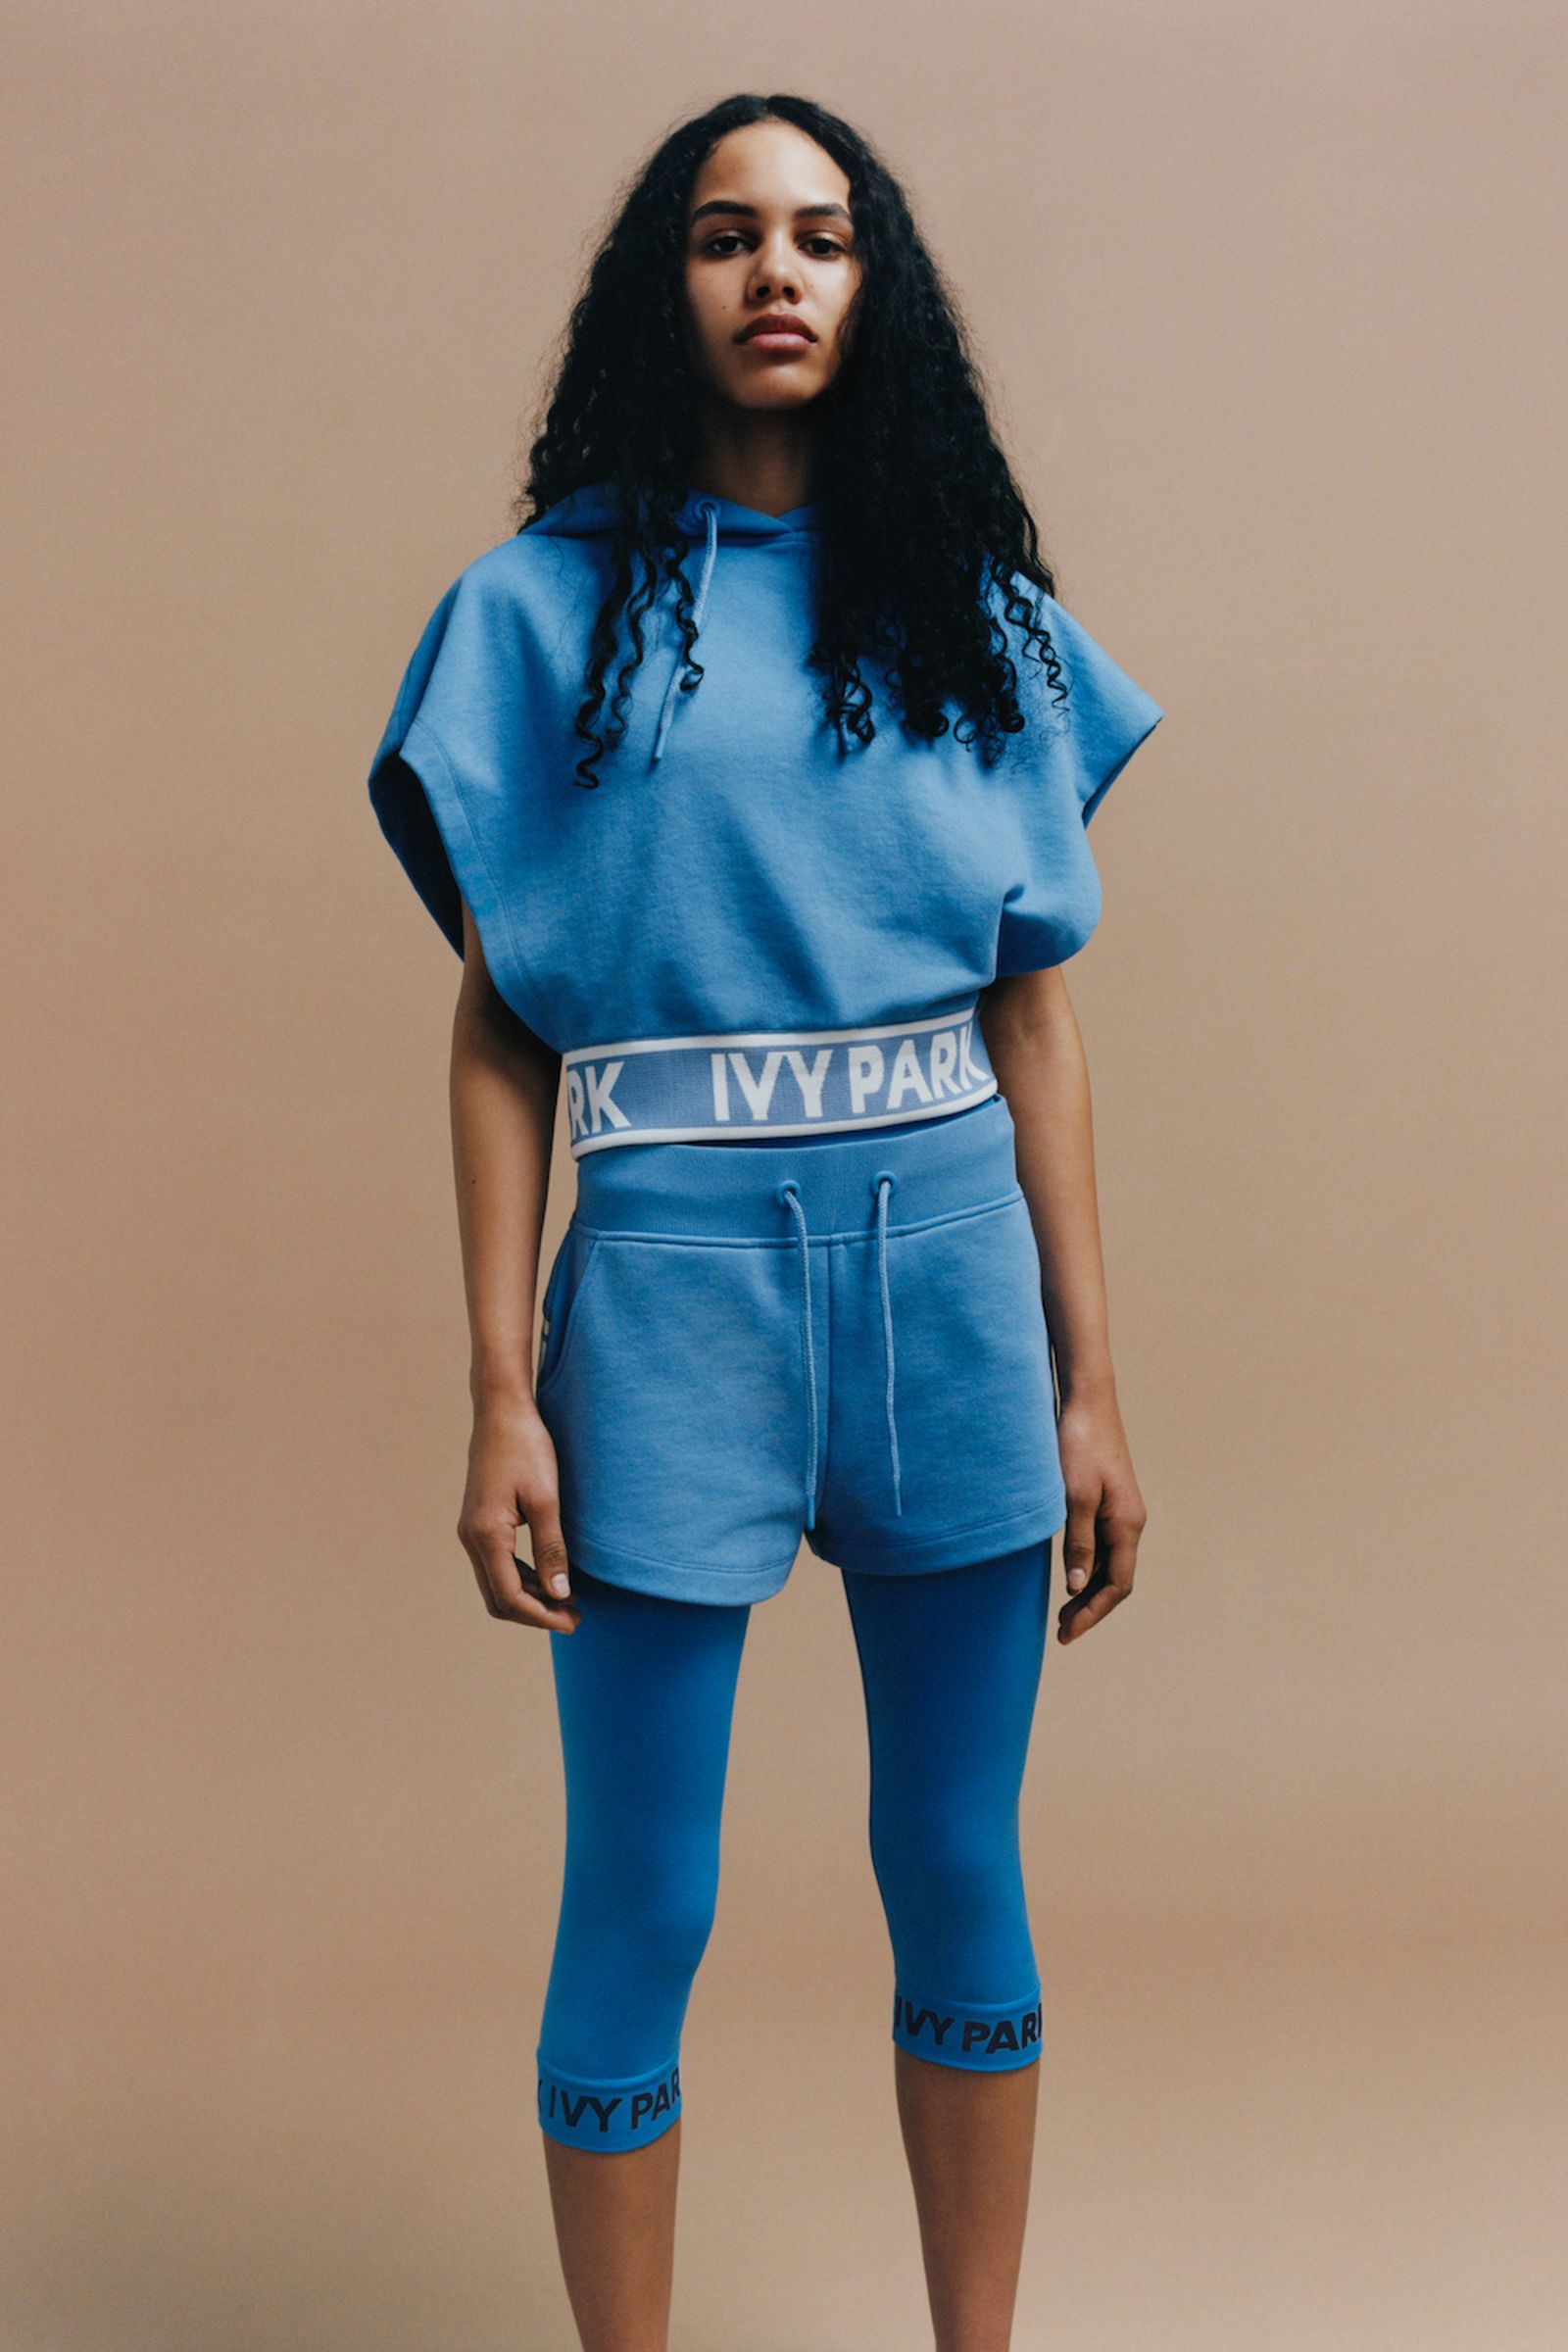 ivy park ss18 collection